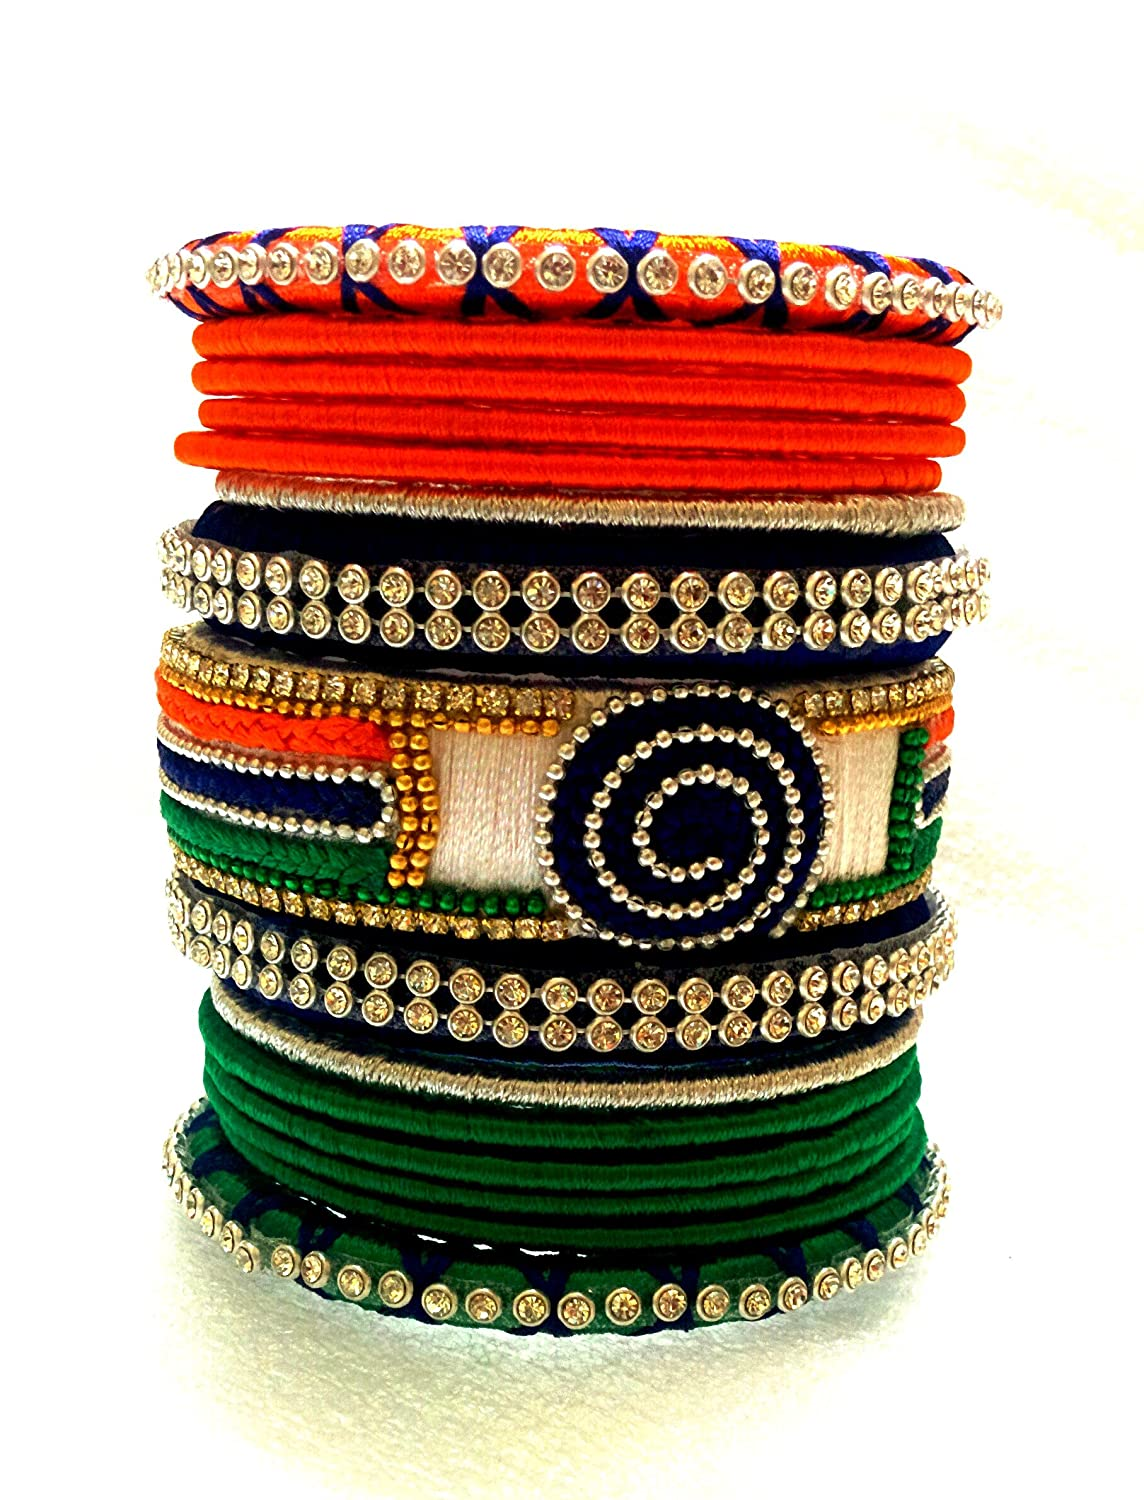 bangles tricolor sporting photos miniature stock india mumbai flag umbrella a photo crafting national hand indian woman dgxbgn